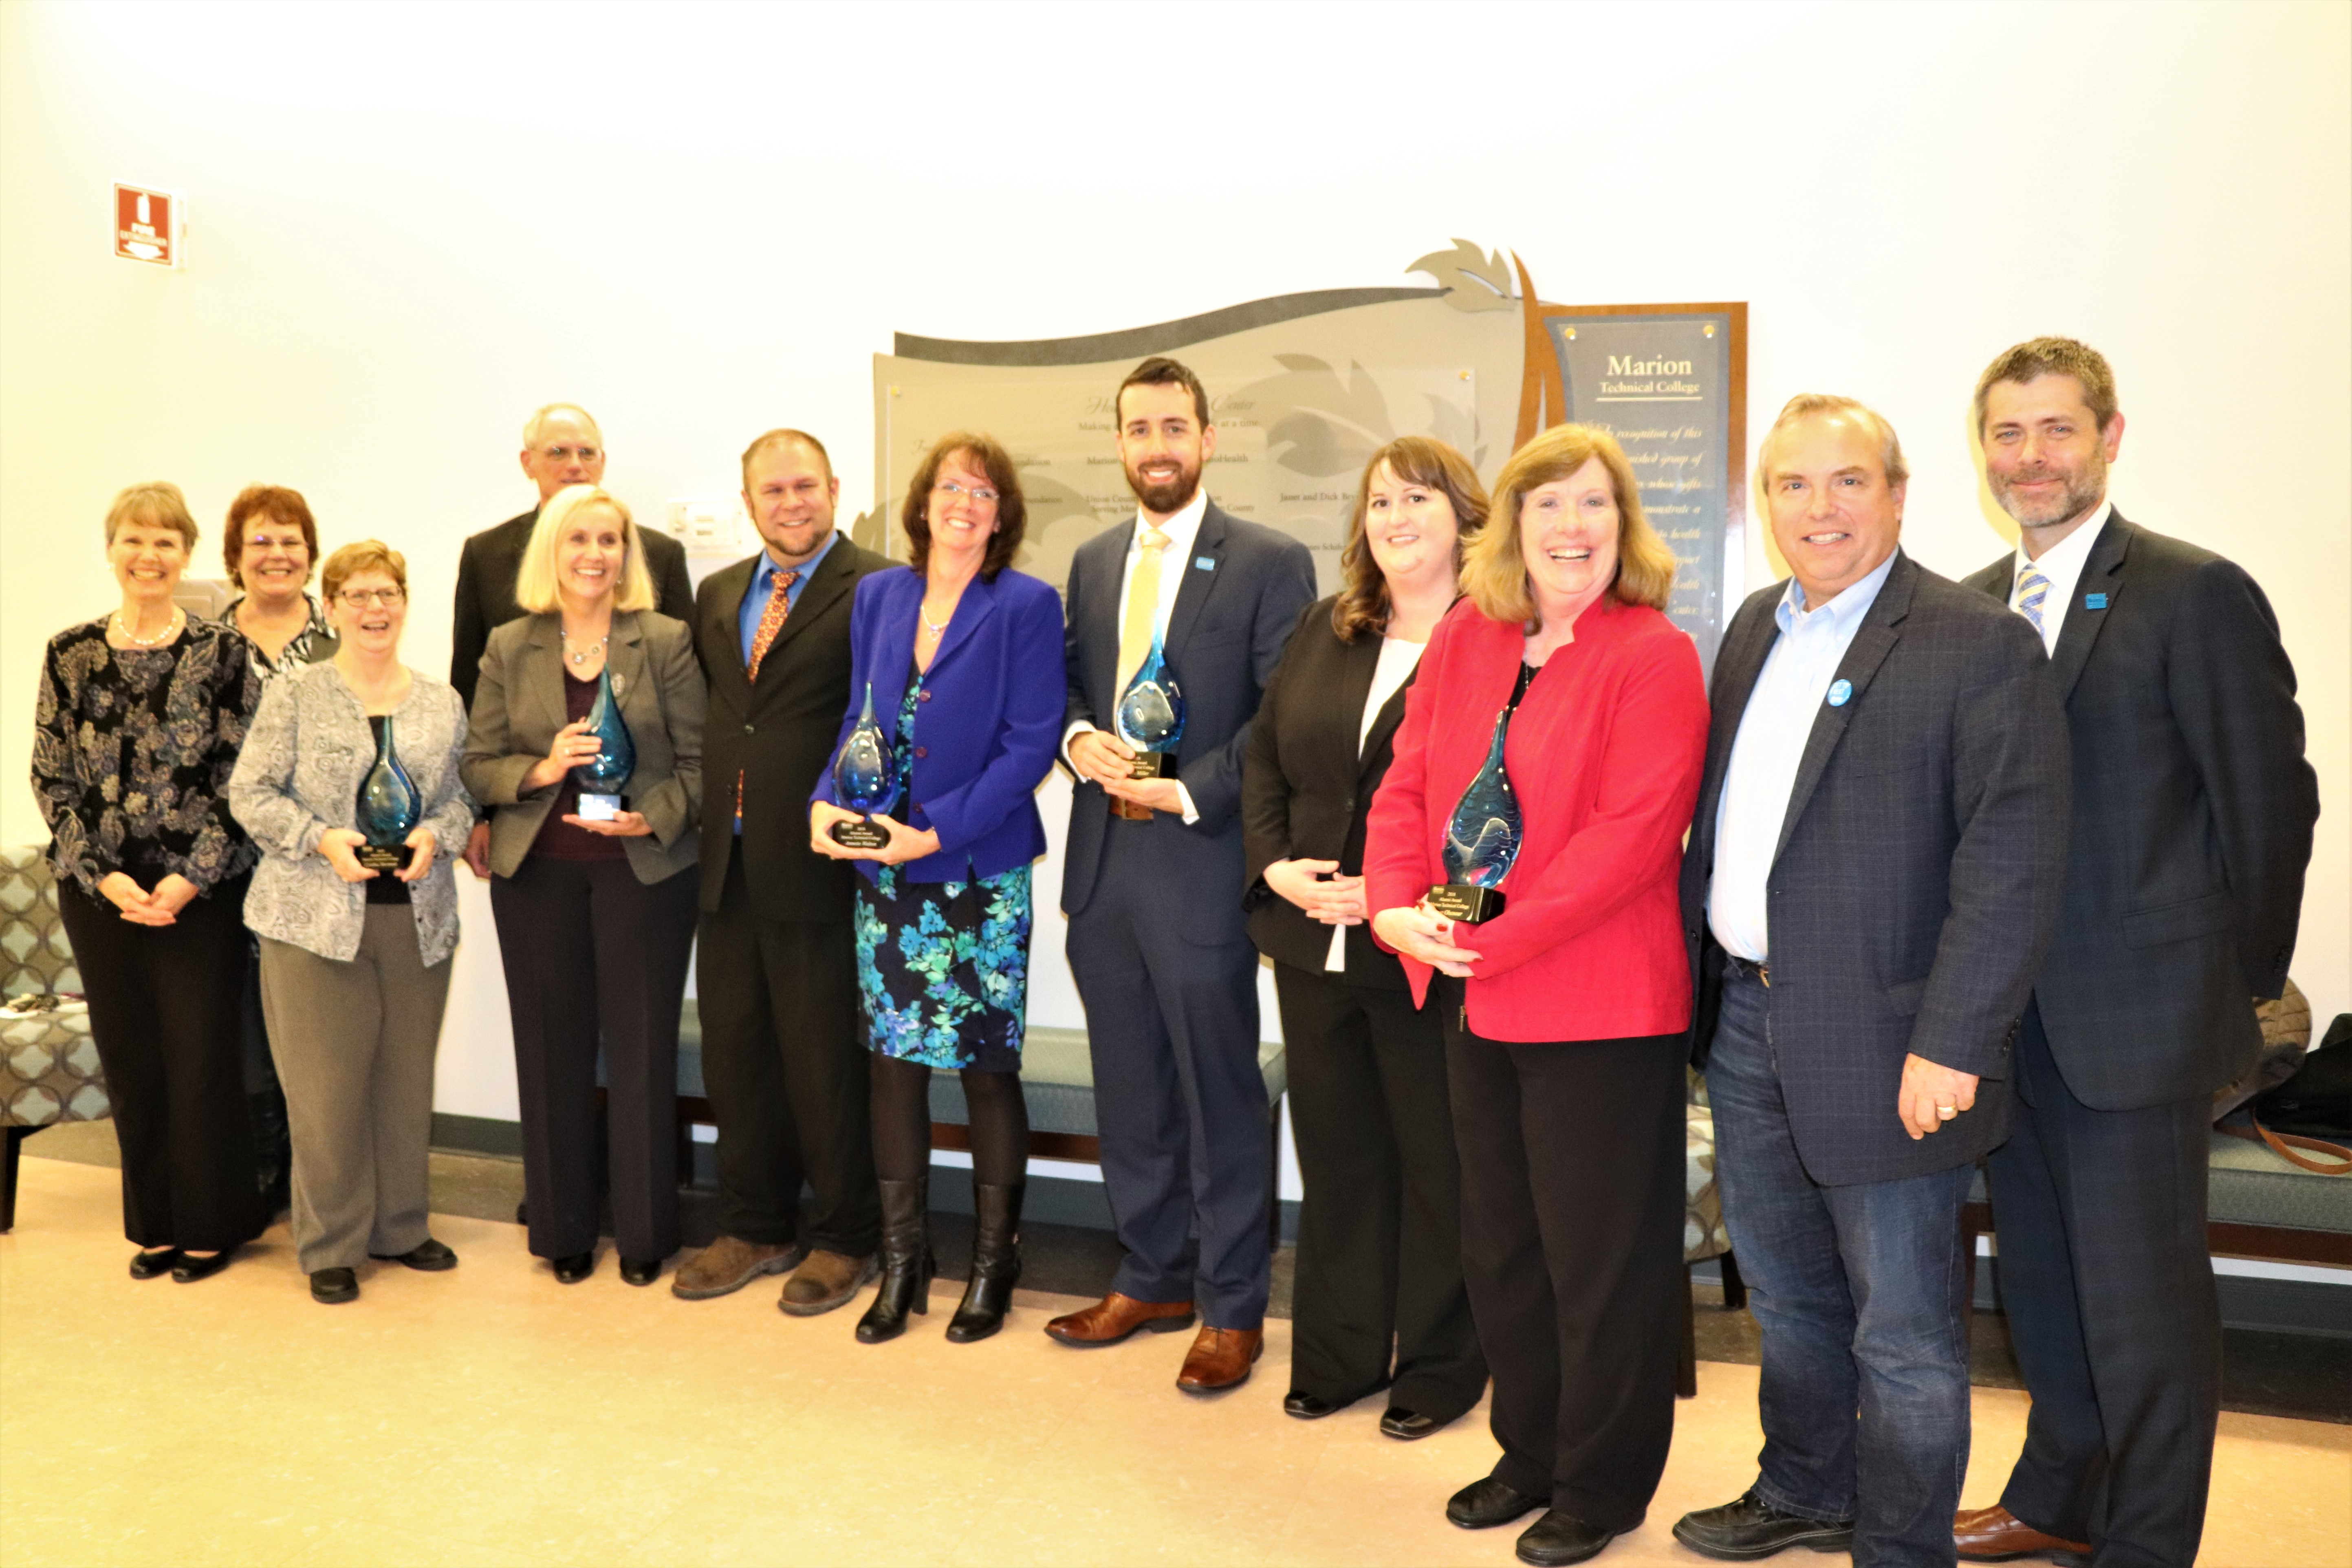 Five Inducted into Alumni Hall of Fame and the New OhioHealth Human Anatomy & Physiology Lab Opened